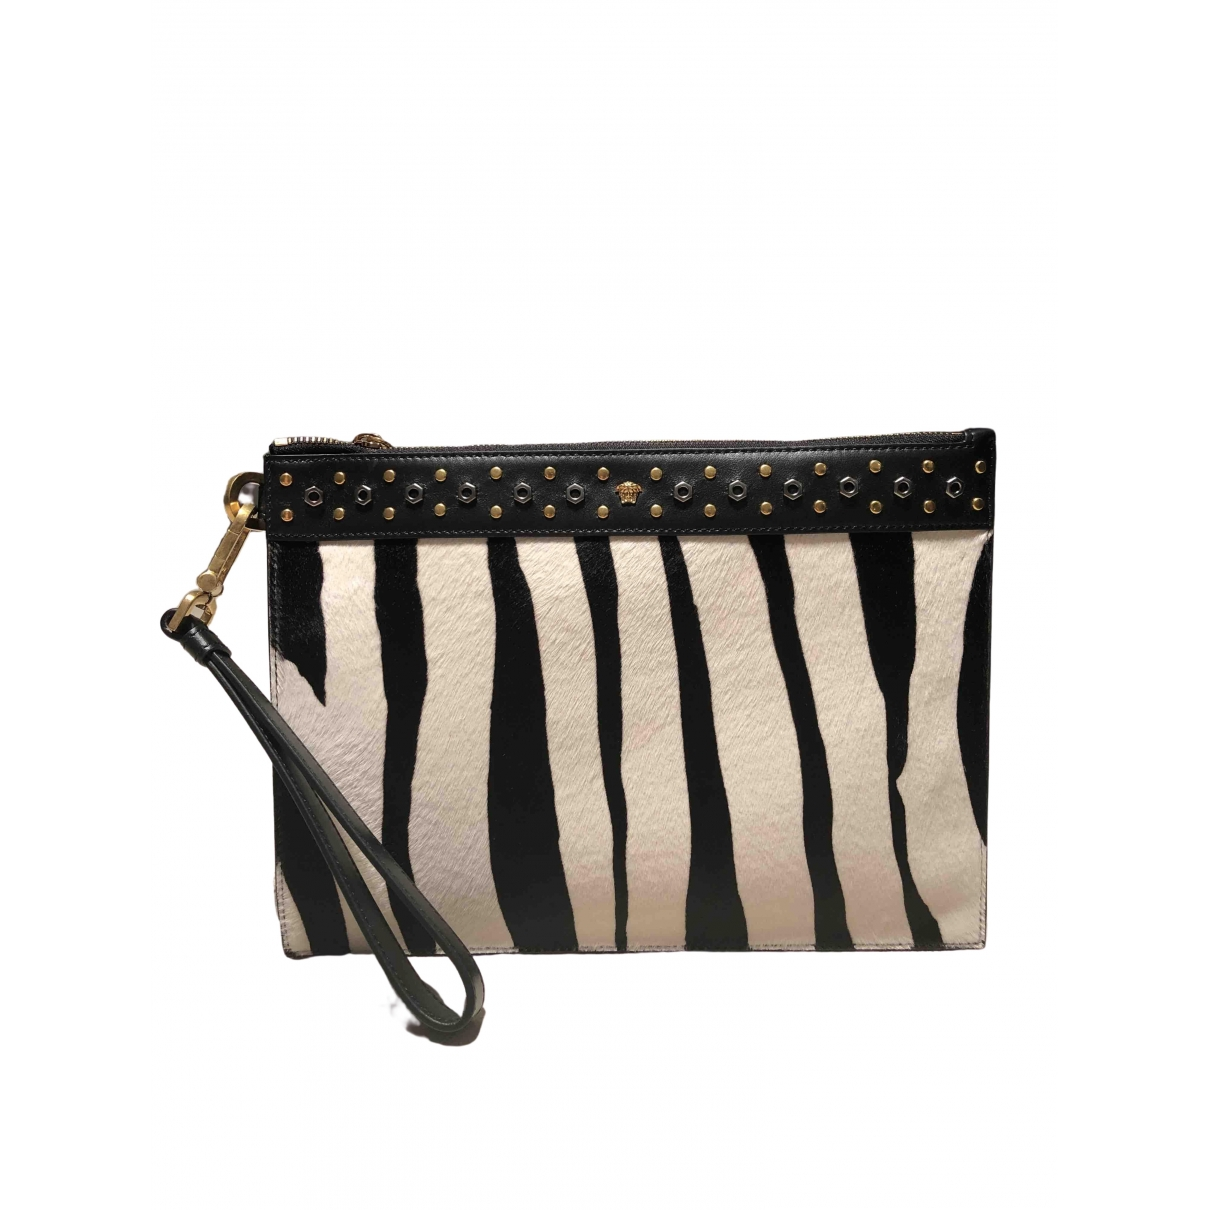 Versace \N Clutch in  Schwarz Kalbsleder in Pony-Optik